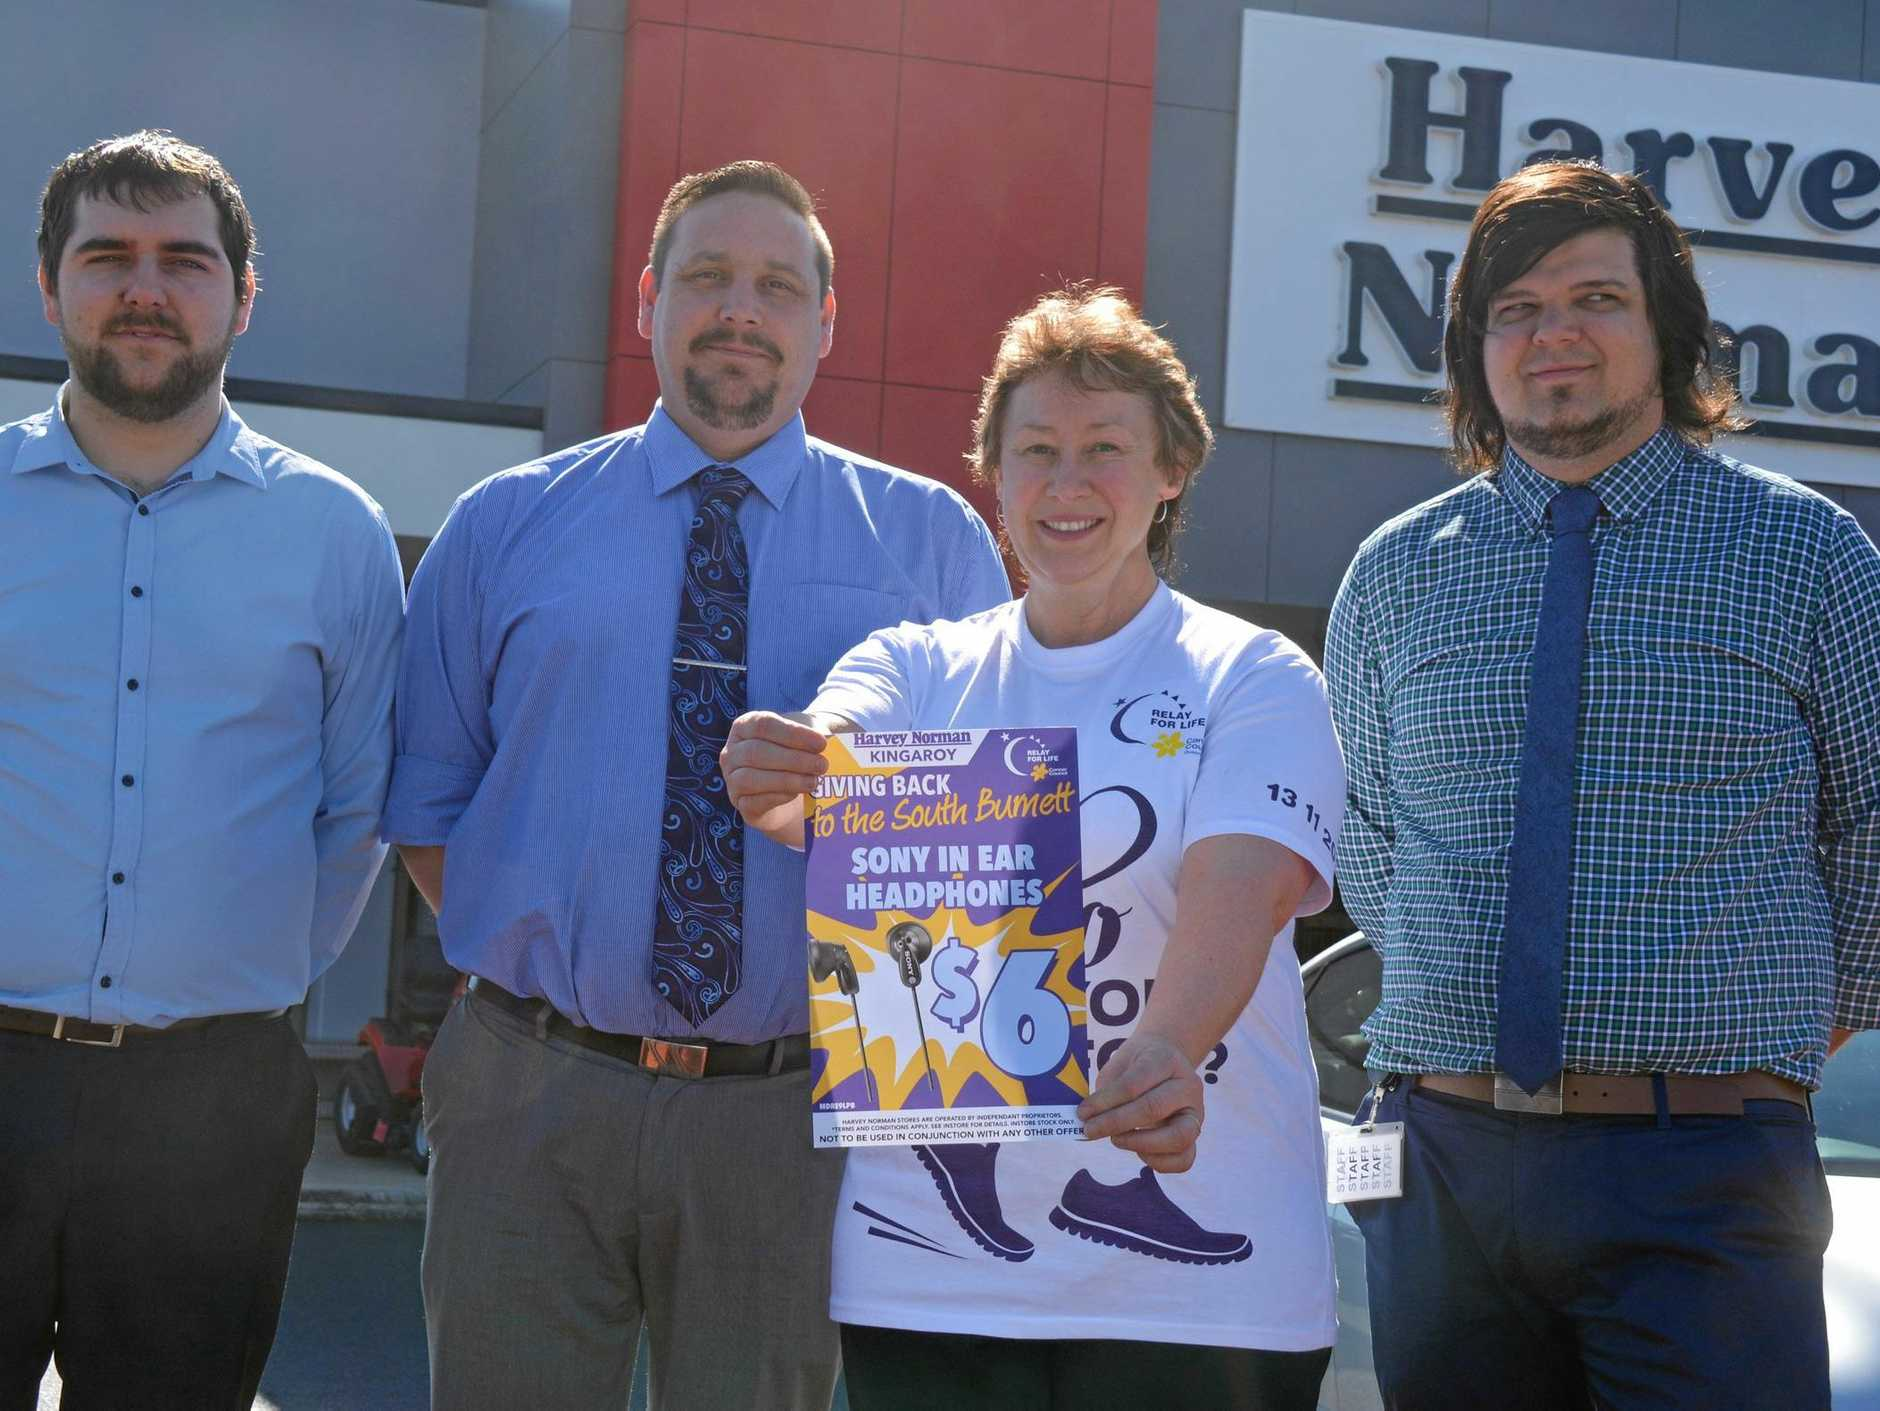 COMMUNITY SUPPORT: Ryan Maxwell, Shaun Treacy, Rowena Dionysus and Brendan Young get prepared for Harvey Norman Kingaroy's Giving Back to the South Burnett sale.